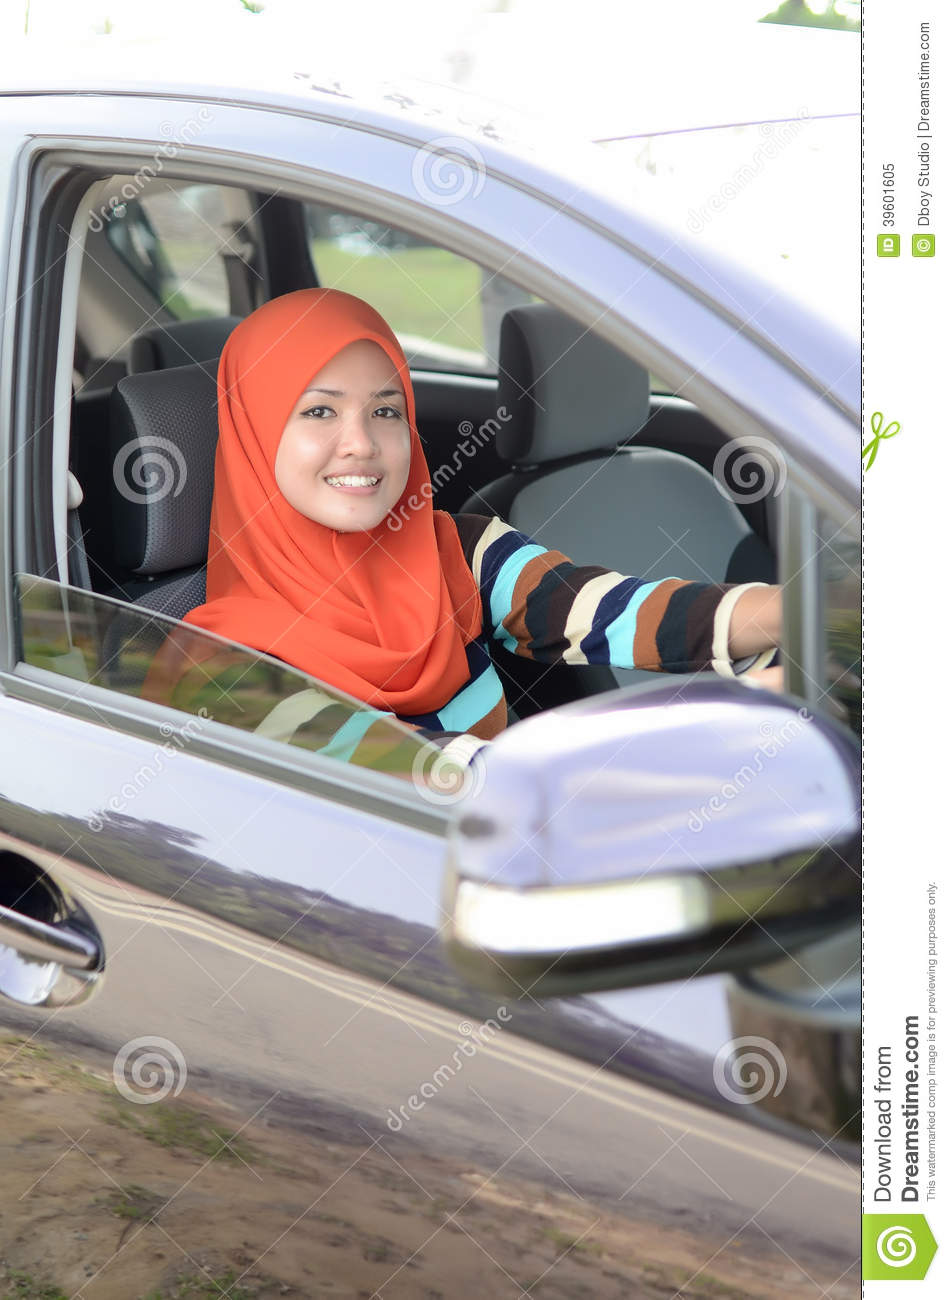 muslim single women in driver Back home in the midwest, drivers tend to be kind  when you go out as a single woman,  i see many arab muslim men as viewing western women as an easy date .